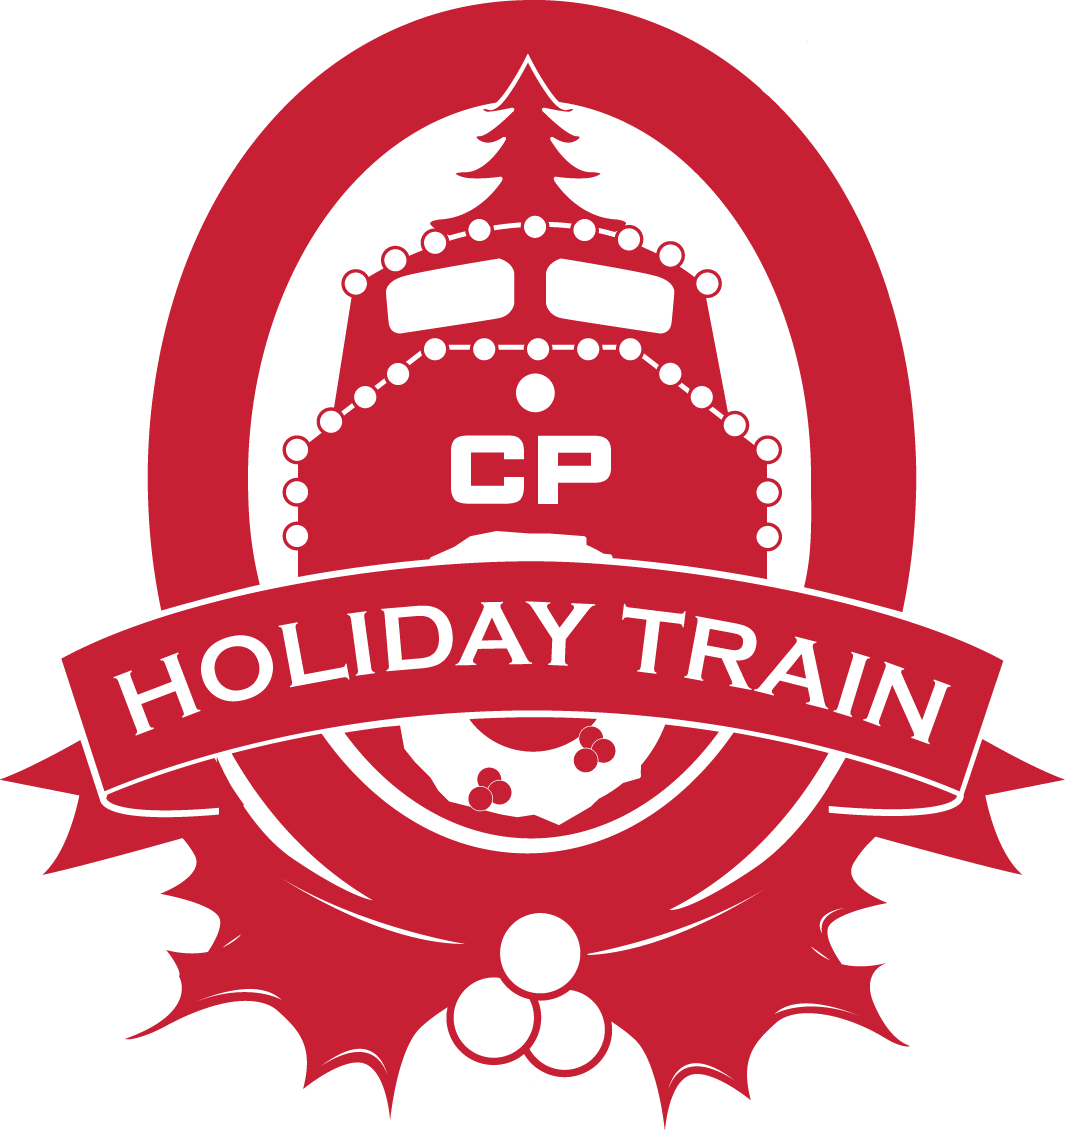 https://www.cpr.ca/en/community-site/PublishingImages/en/community/holiday-train/HT_2014_Logo.png